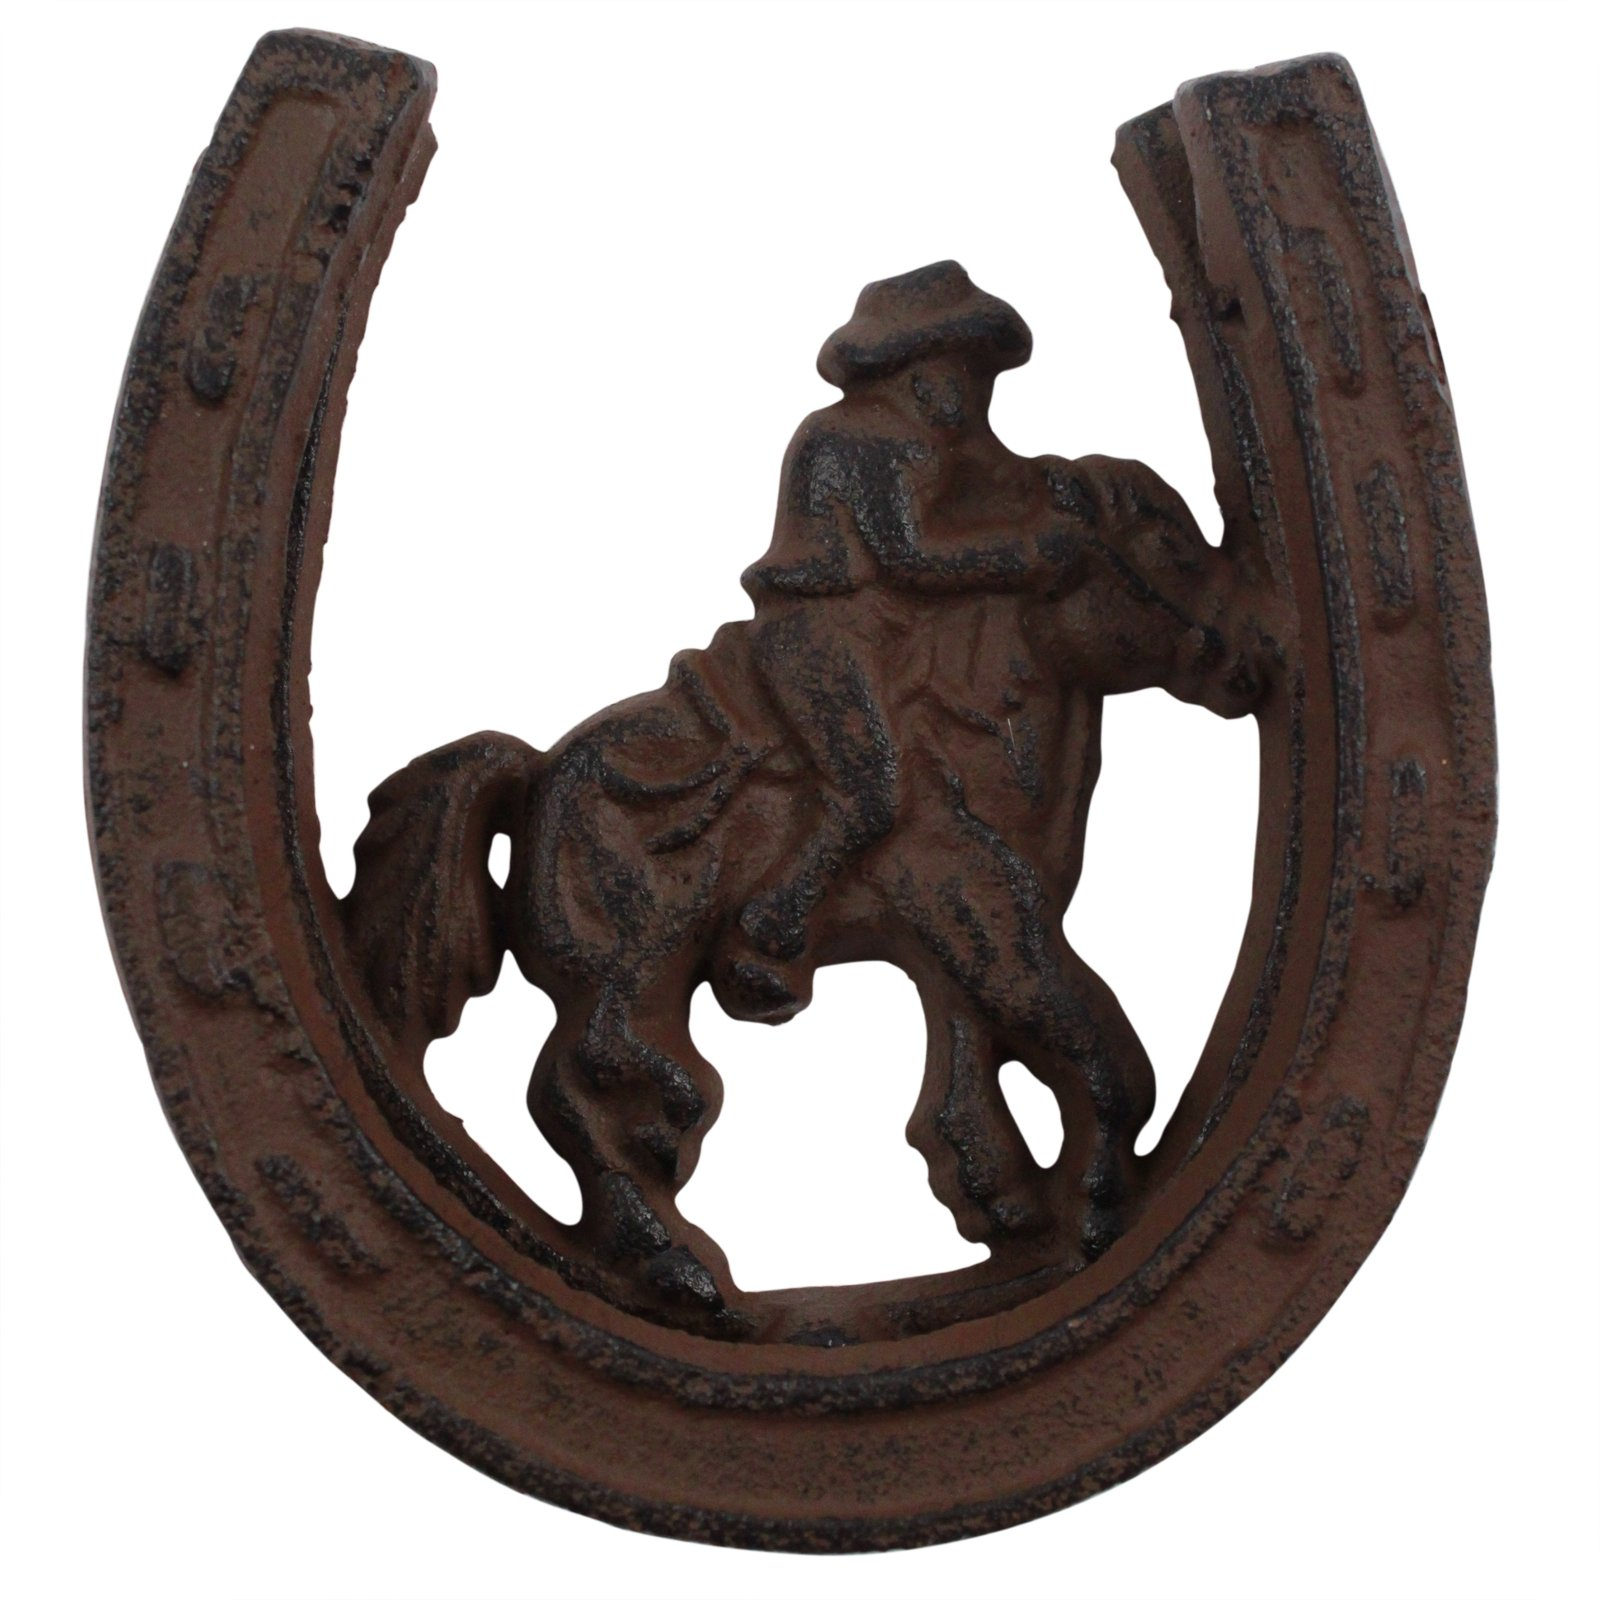 Bon Cowboy Horseshoe Western Theme Door Knocker